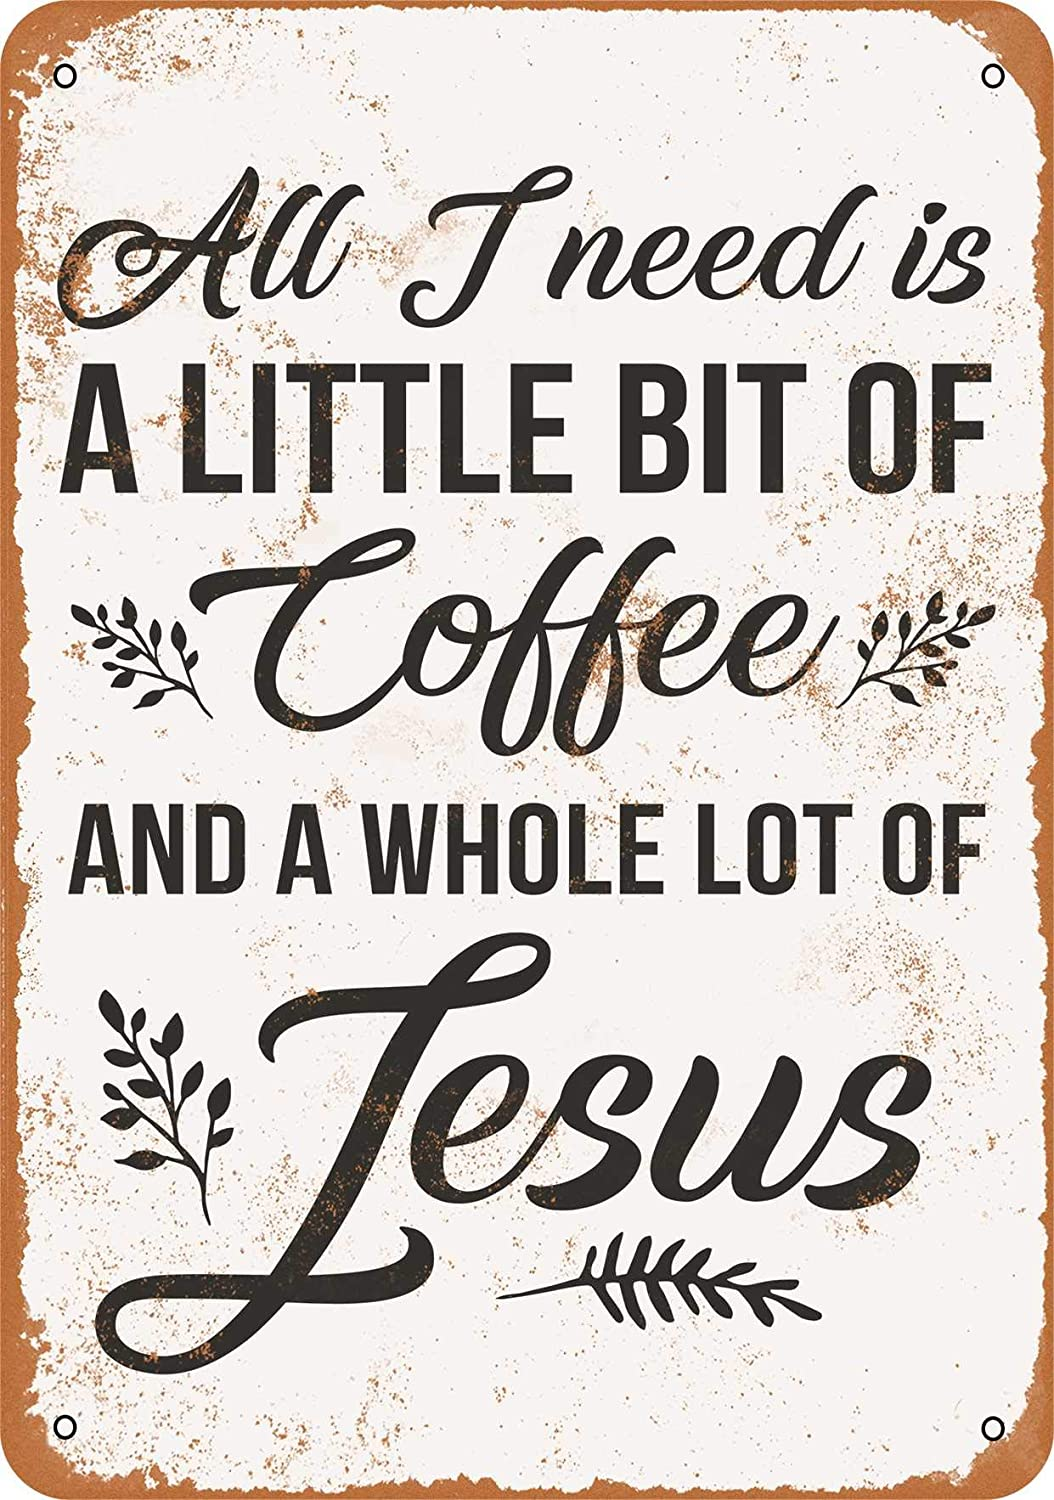 Wall-Color 9 x 12 Metal Sign - All I Need is a Little Bit of Coffee and Jesus - Vintage Look